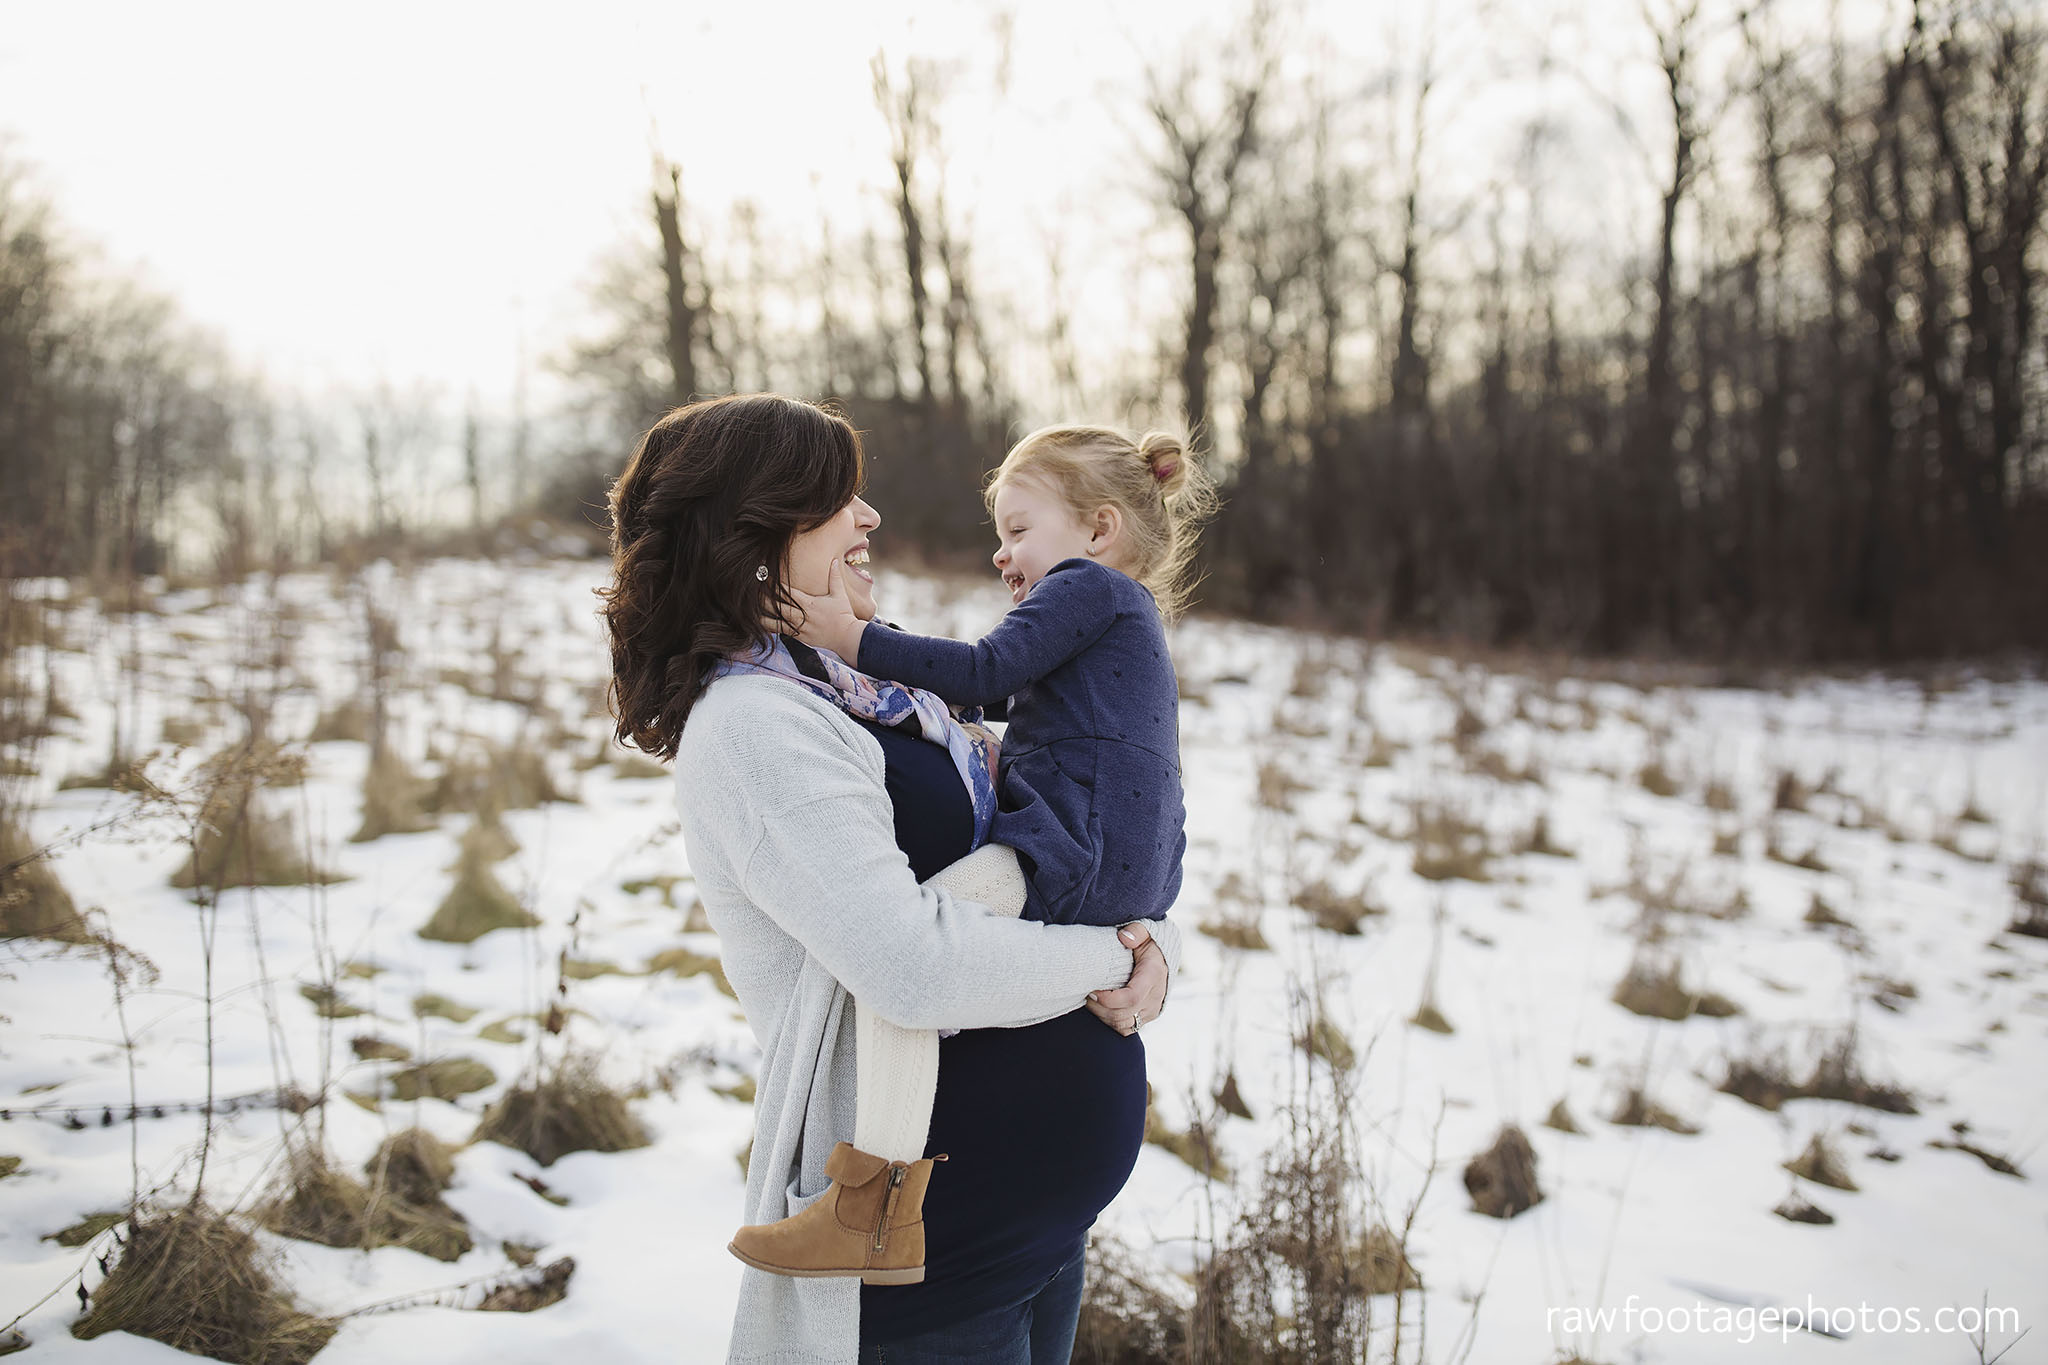 London_Ontario_Maternity_Photographer-Maternity_Session-Family_Photography-Winter_Photos-Raw_Footage_Photography011.jpg